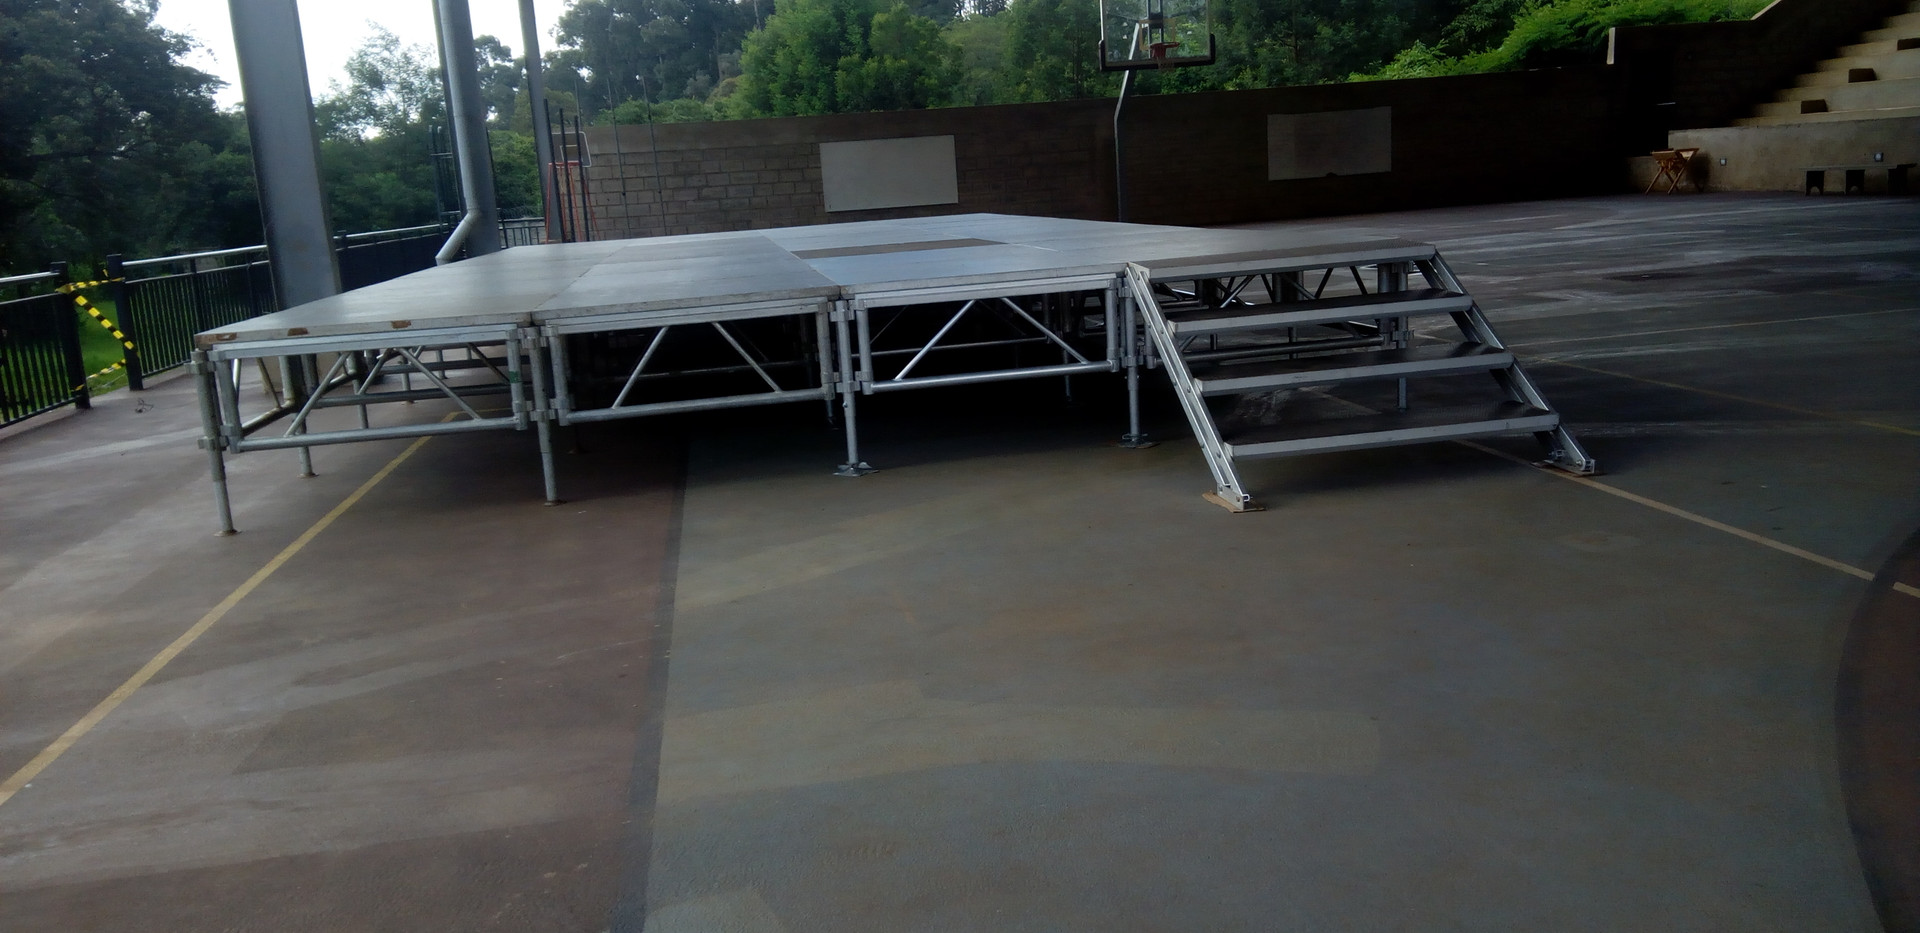 Regular Board Stage structure